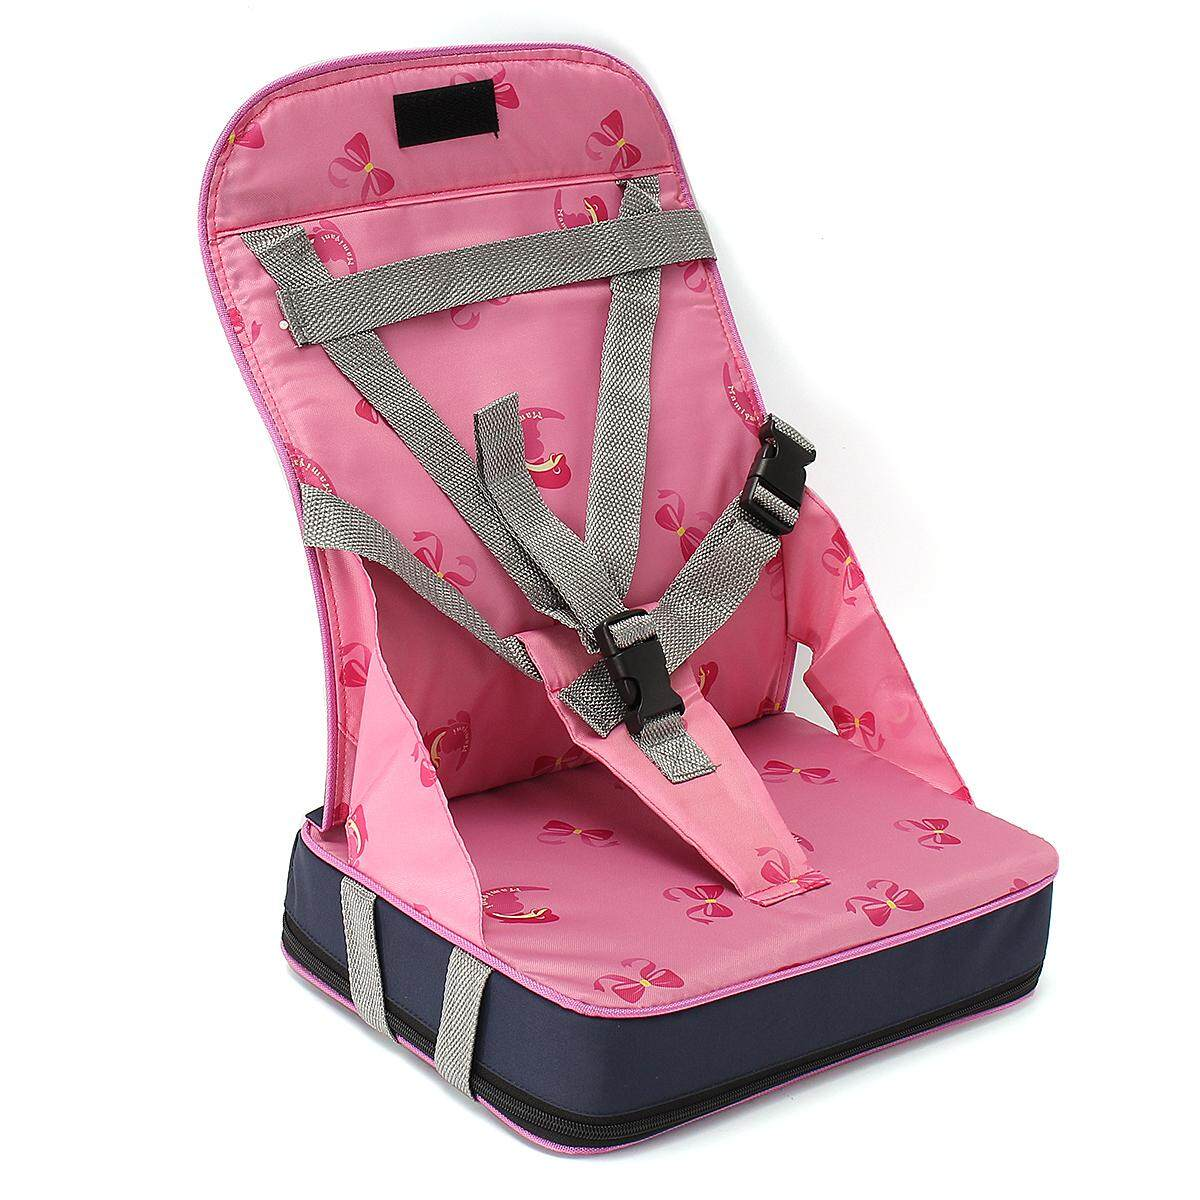 Portable Baby Travel High Chair Dining Feeding Chair Foldable Kids Booster Seat Intl Not Specified Discount